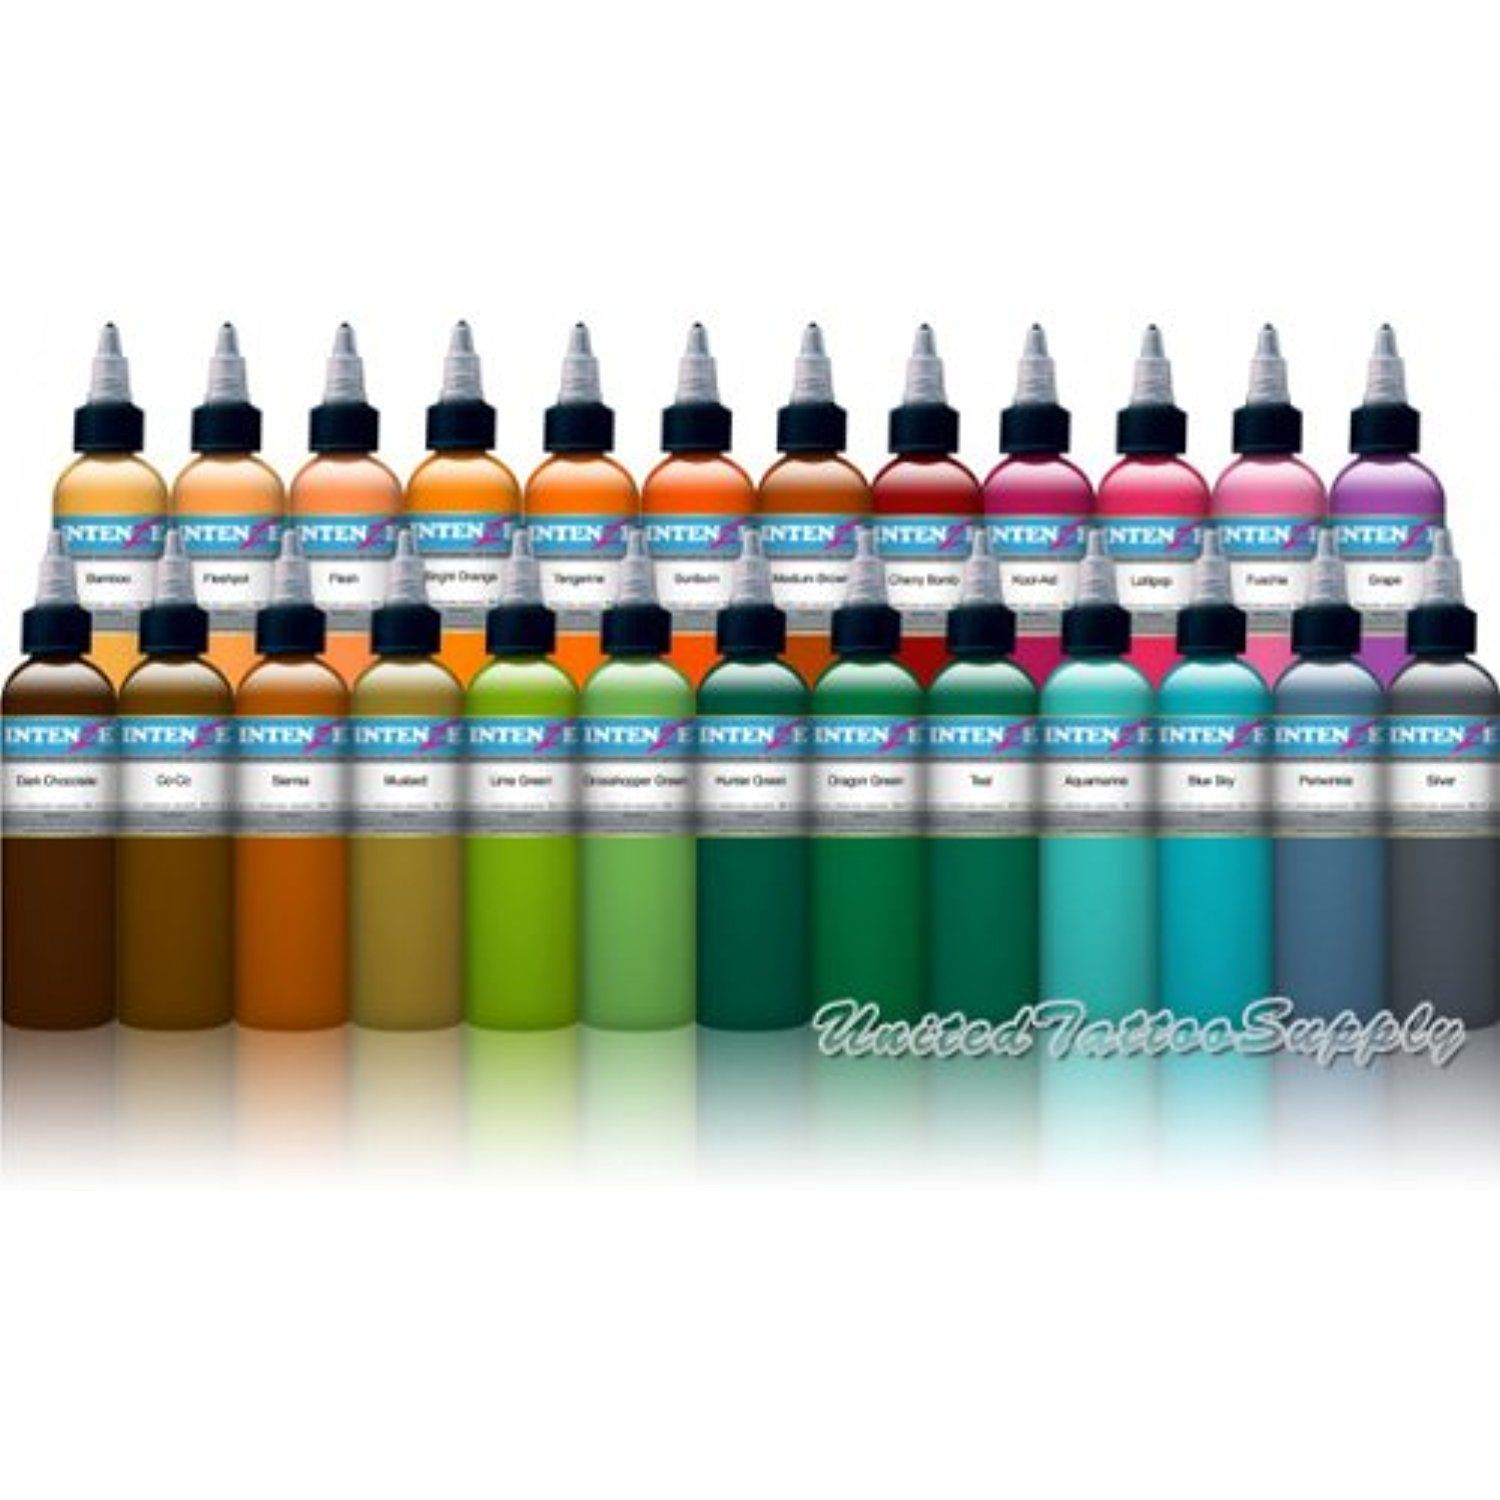 Intenze Color Tattoo Ink Sets 1 Oz 25 Color Tattoo Ink Set To View Further For This Item Visit The Image Link Tattoo Ink Sets Ink Tattoo Best Tattoo Ink